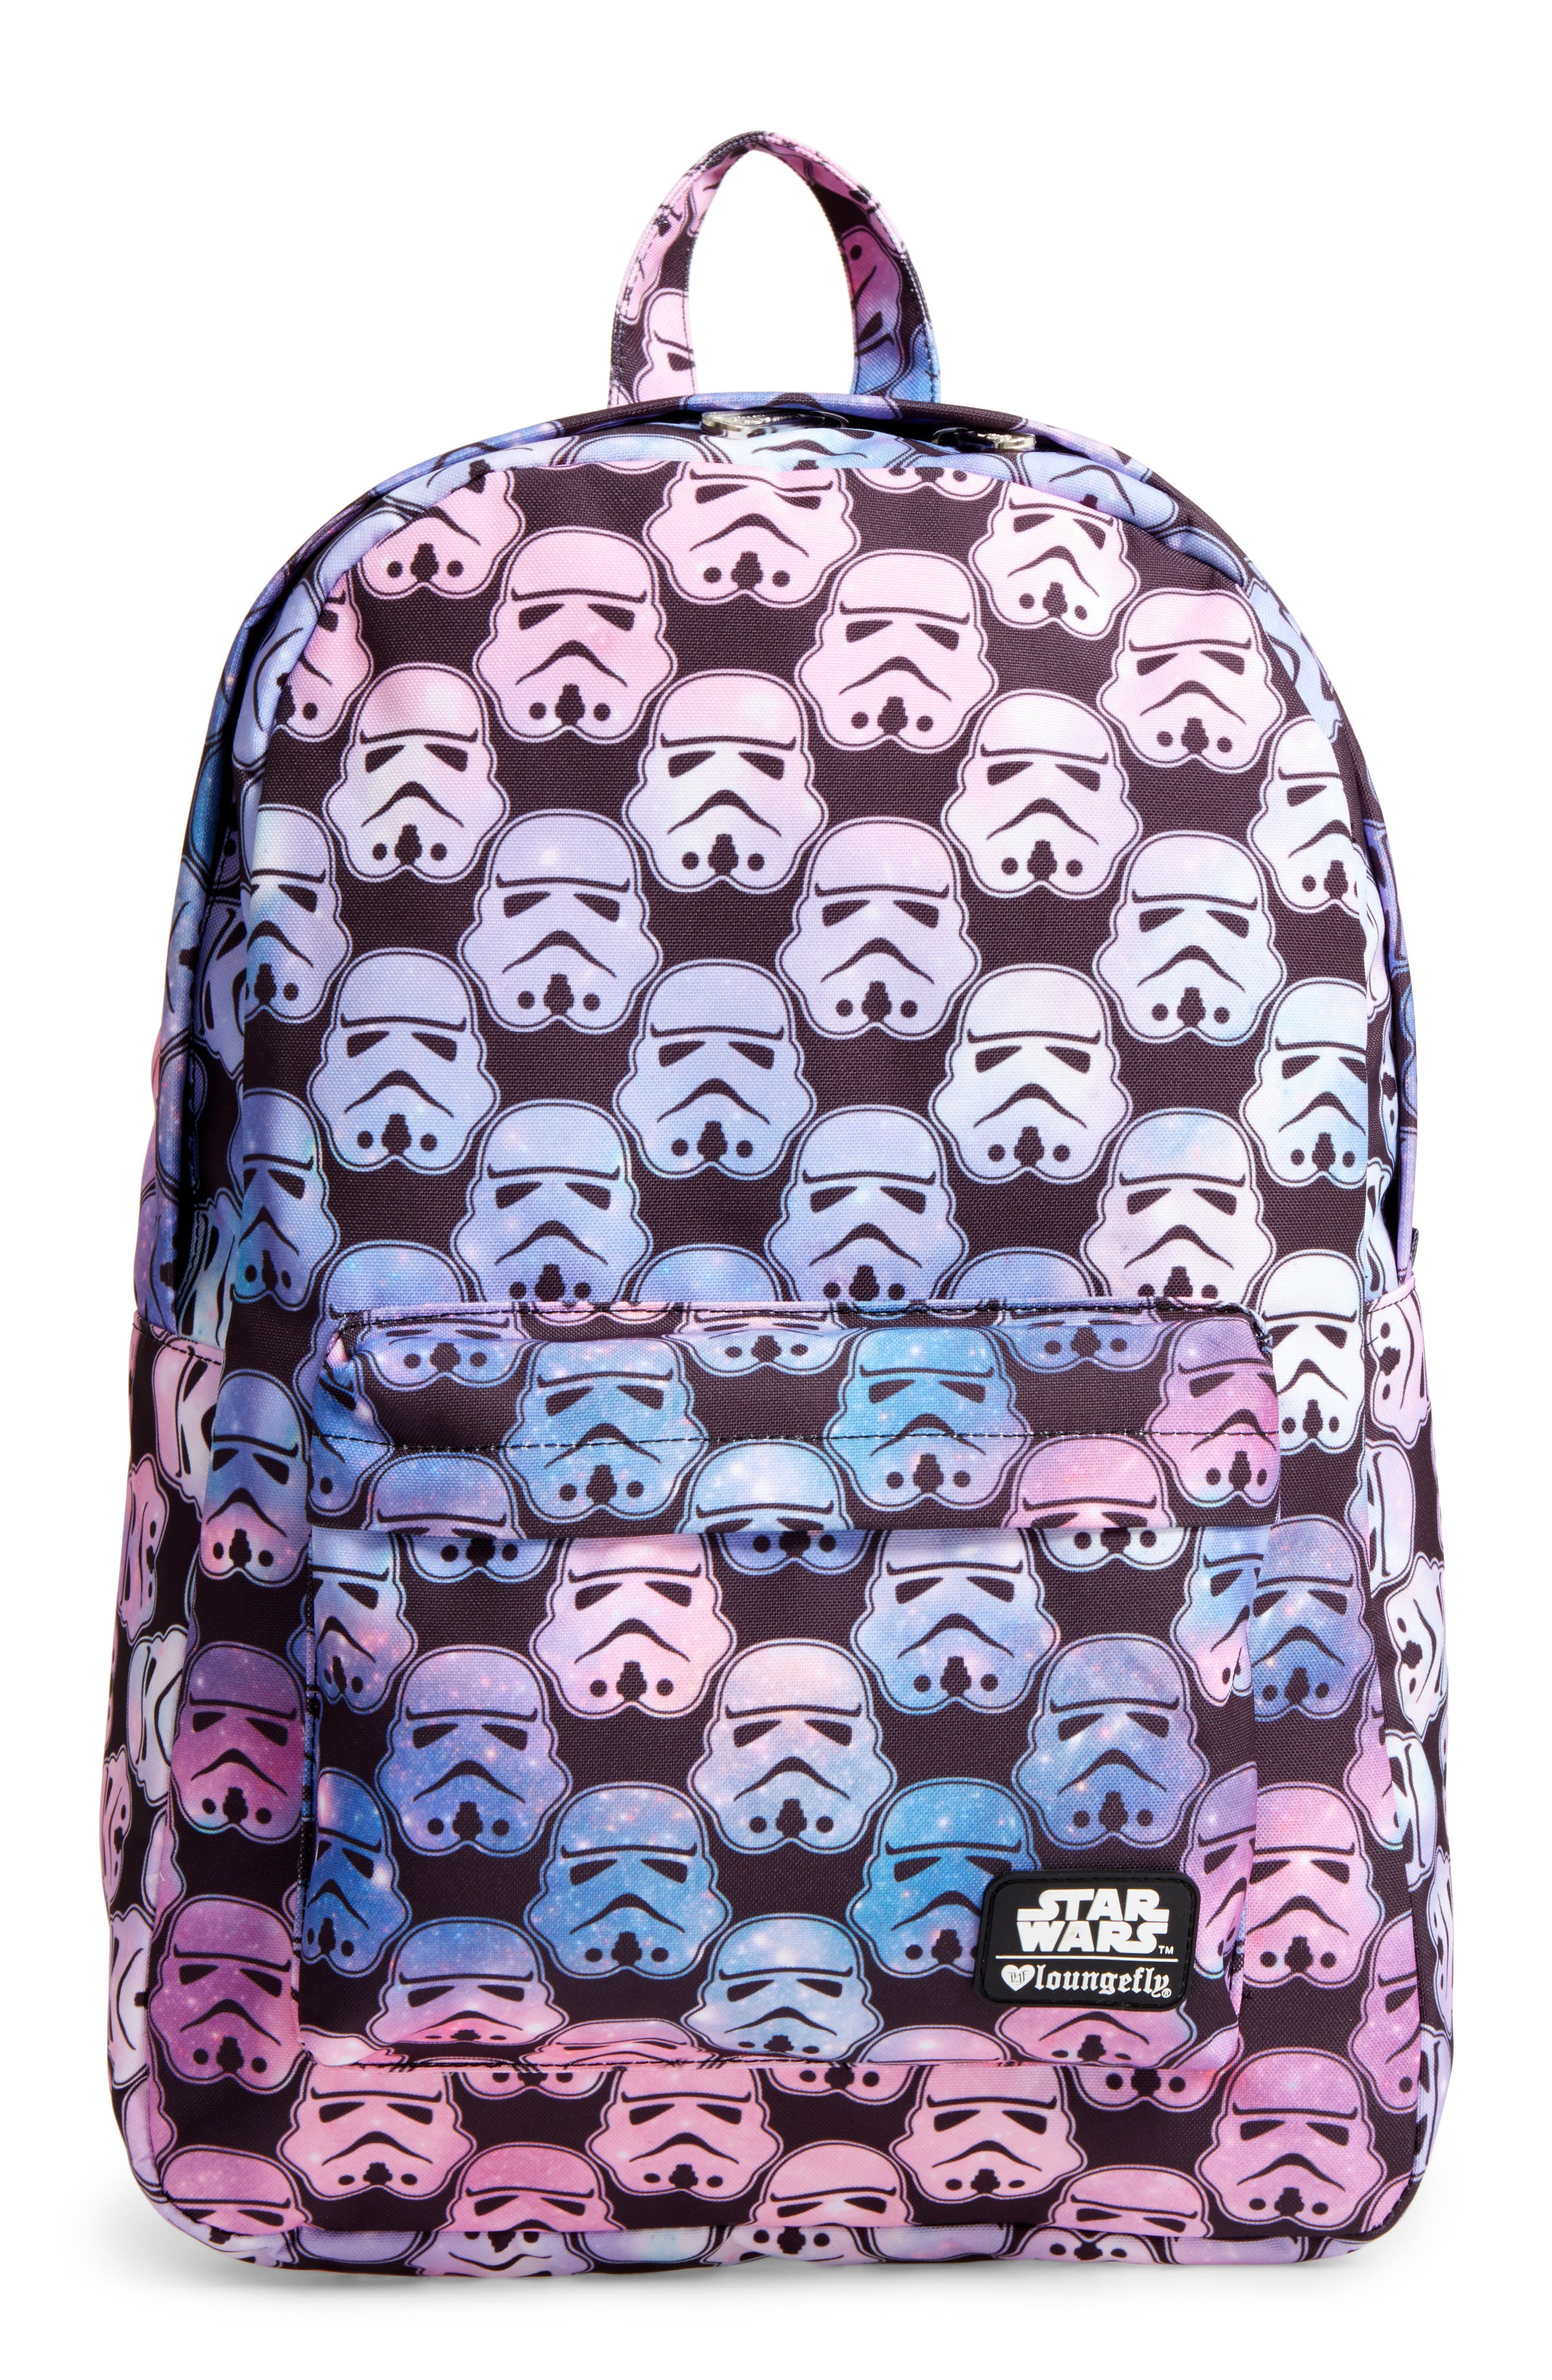 Star Wars<sup>™</sup> Stormtrooper Galaxy Backpack,                         Main,                         color, Multi Black